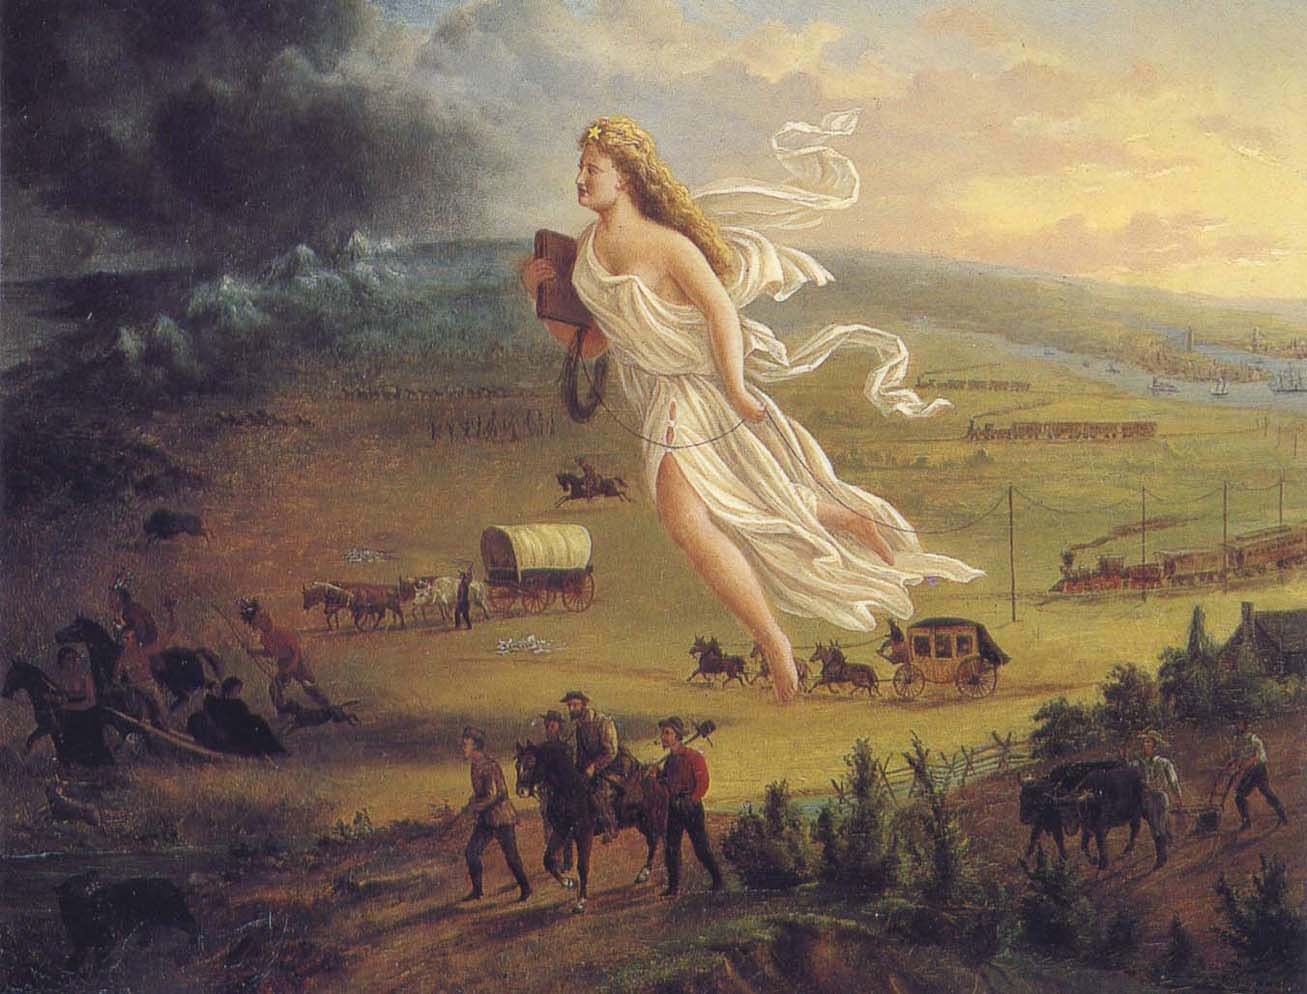 manifest destiny 11 It claimed that america had a destiny, manifest,  manifest destiny (1958) and frederick merk, manifest destiny and mission in america (1963) remain useful.